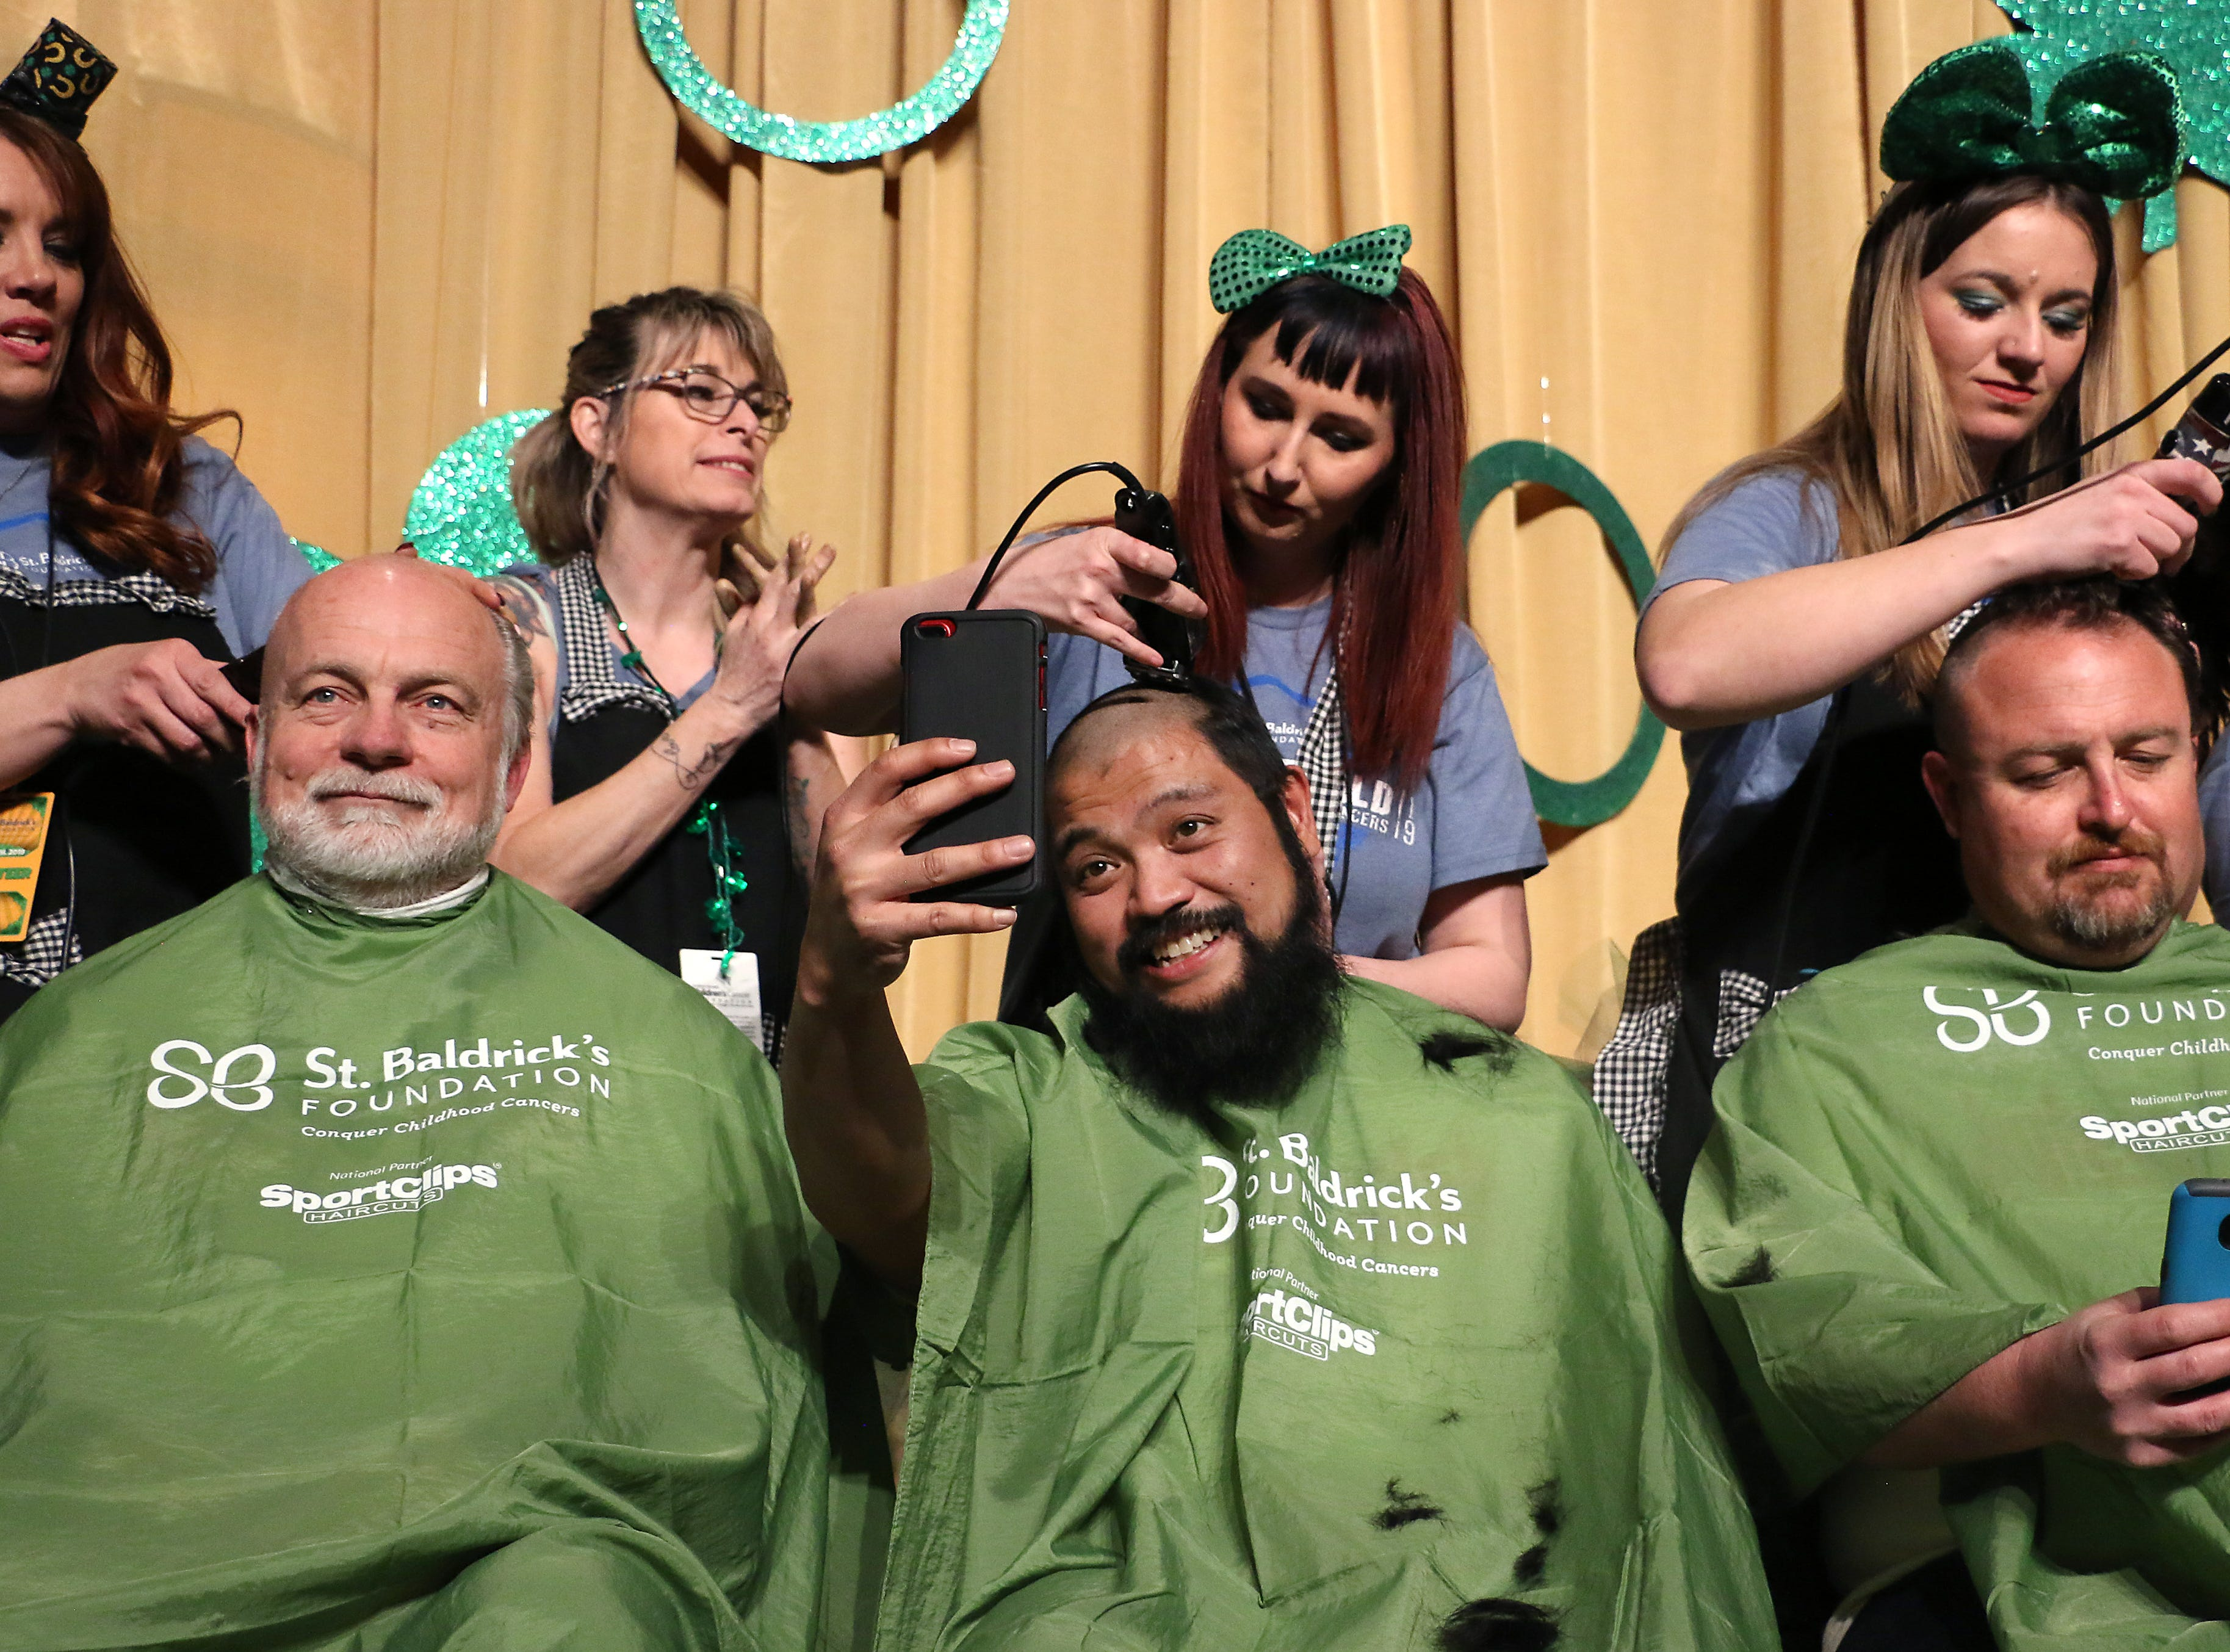 Patrick Molino, middle, takes a selfie during the Northern Nevada Children Cancer Foundation and the St. Baldrick's Foundation's fundraising head-shaving event at the Downtown Reno Ballroom on March 15, 2019.